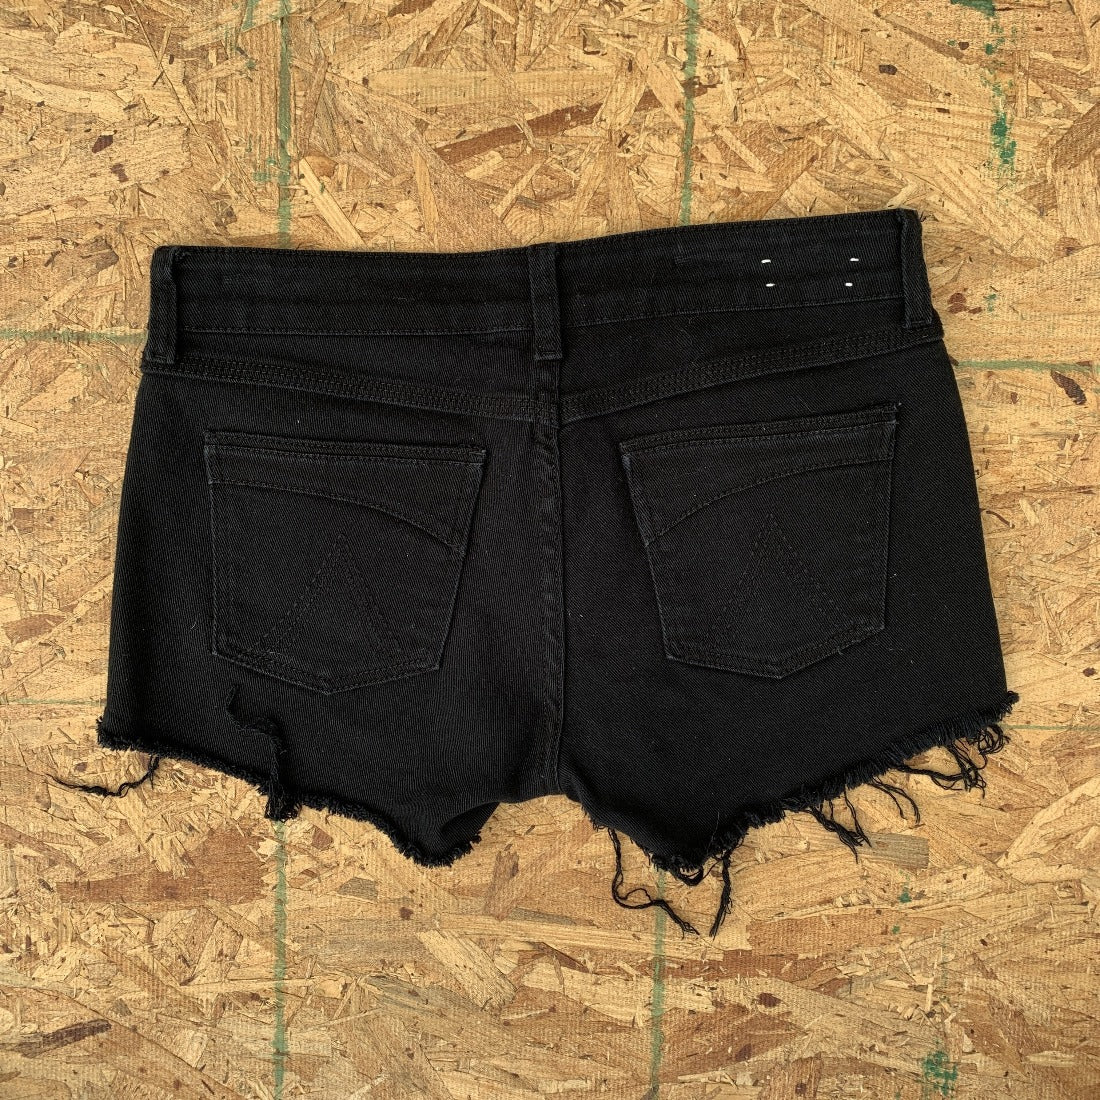 90s Delia's Black Denim Cutoff Shorts  | 9 10